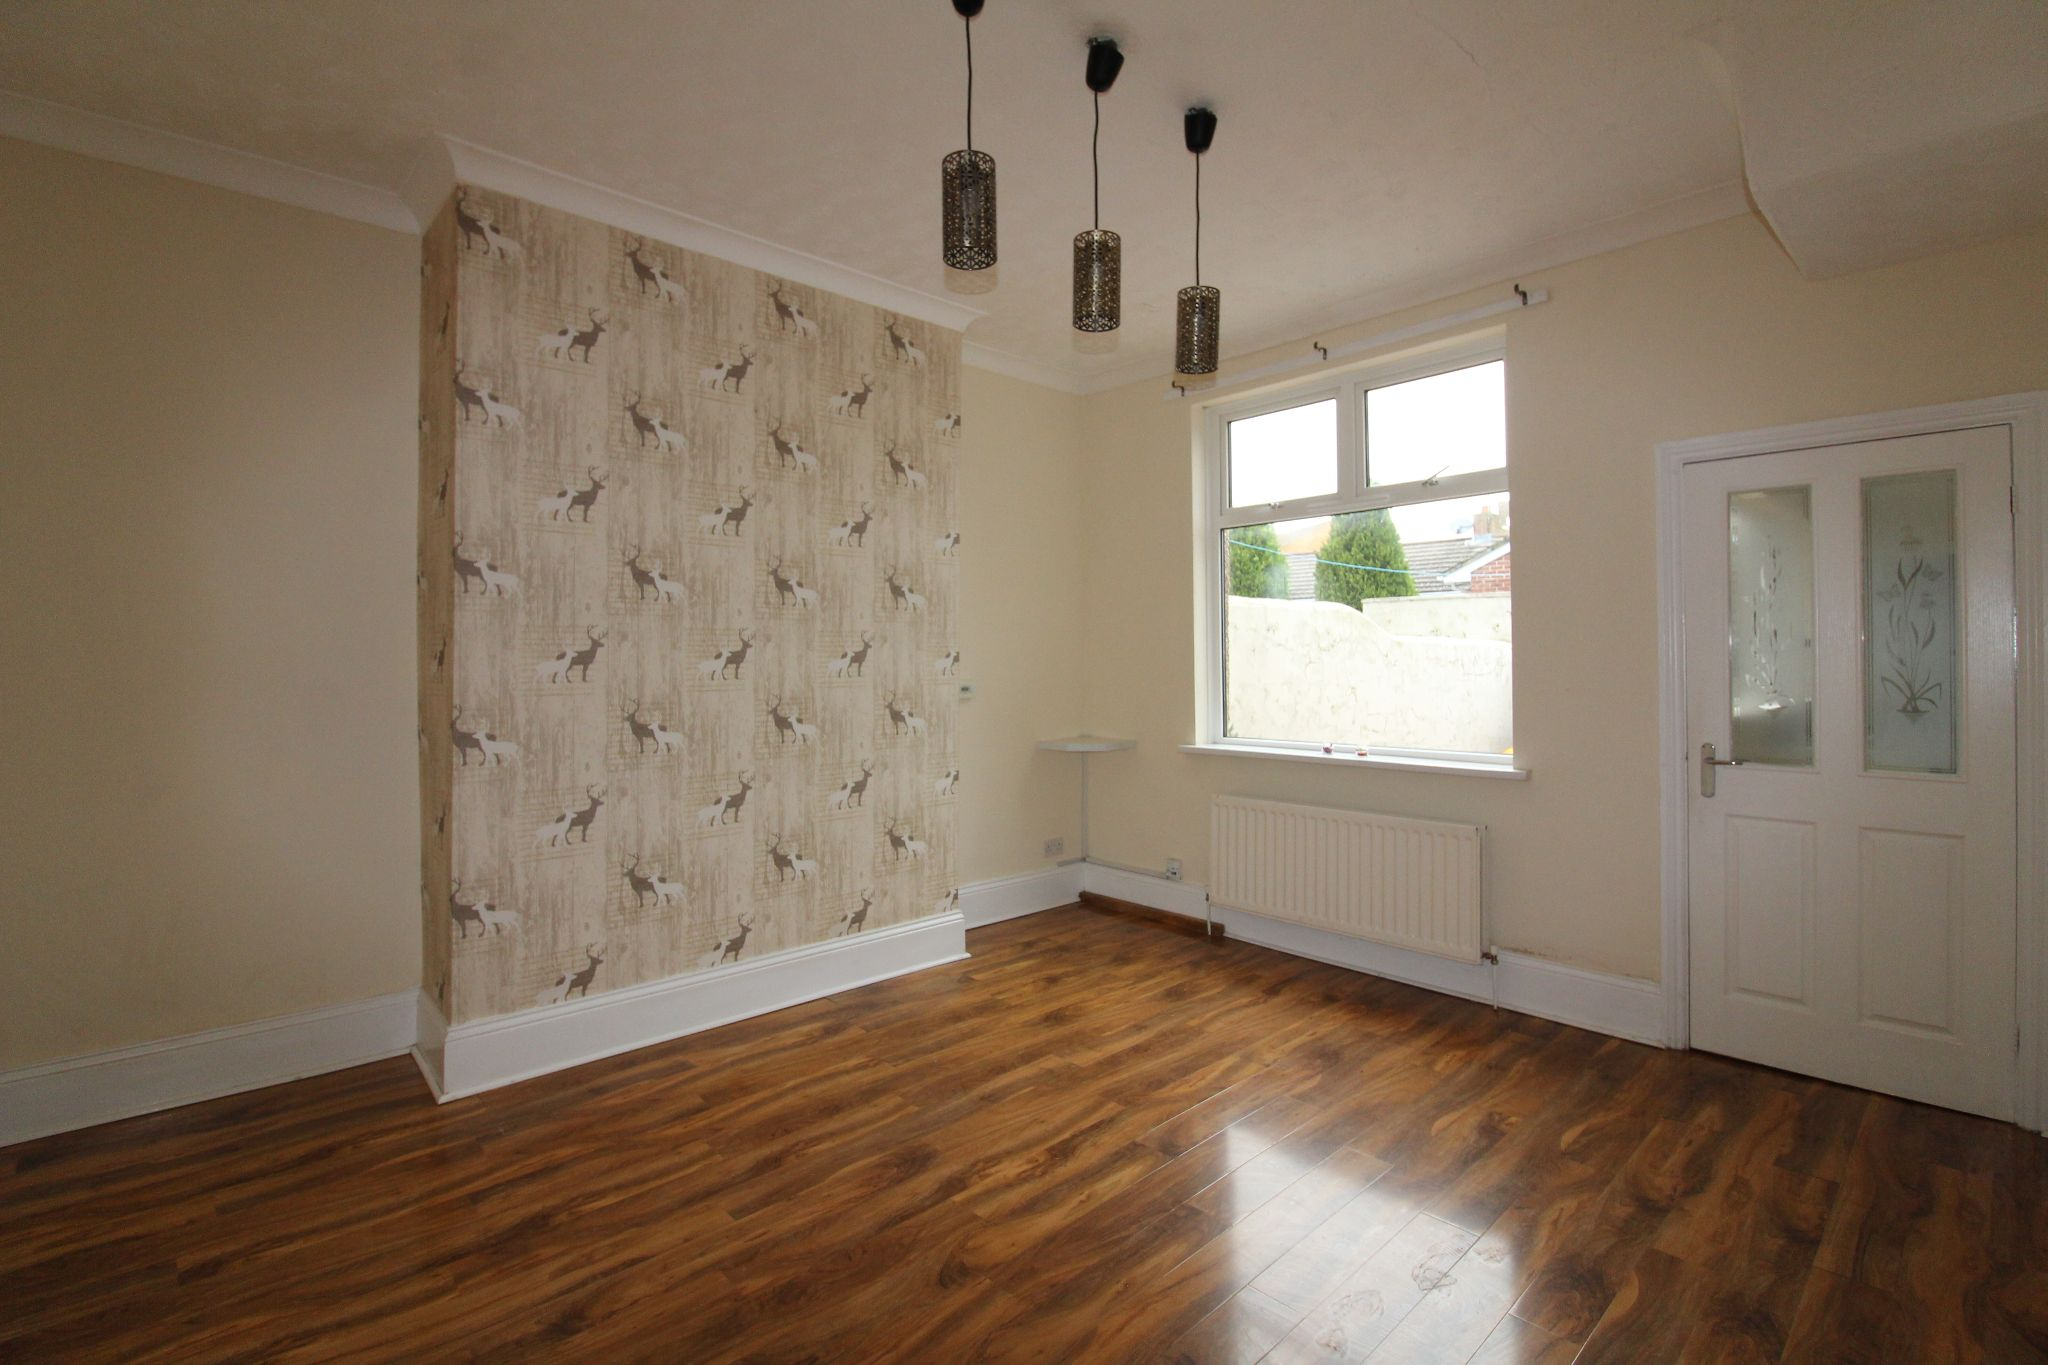 3 bedroom mid terraced house For Sale in Crook - Photograph 8.